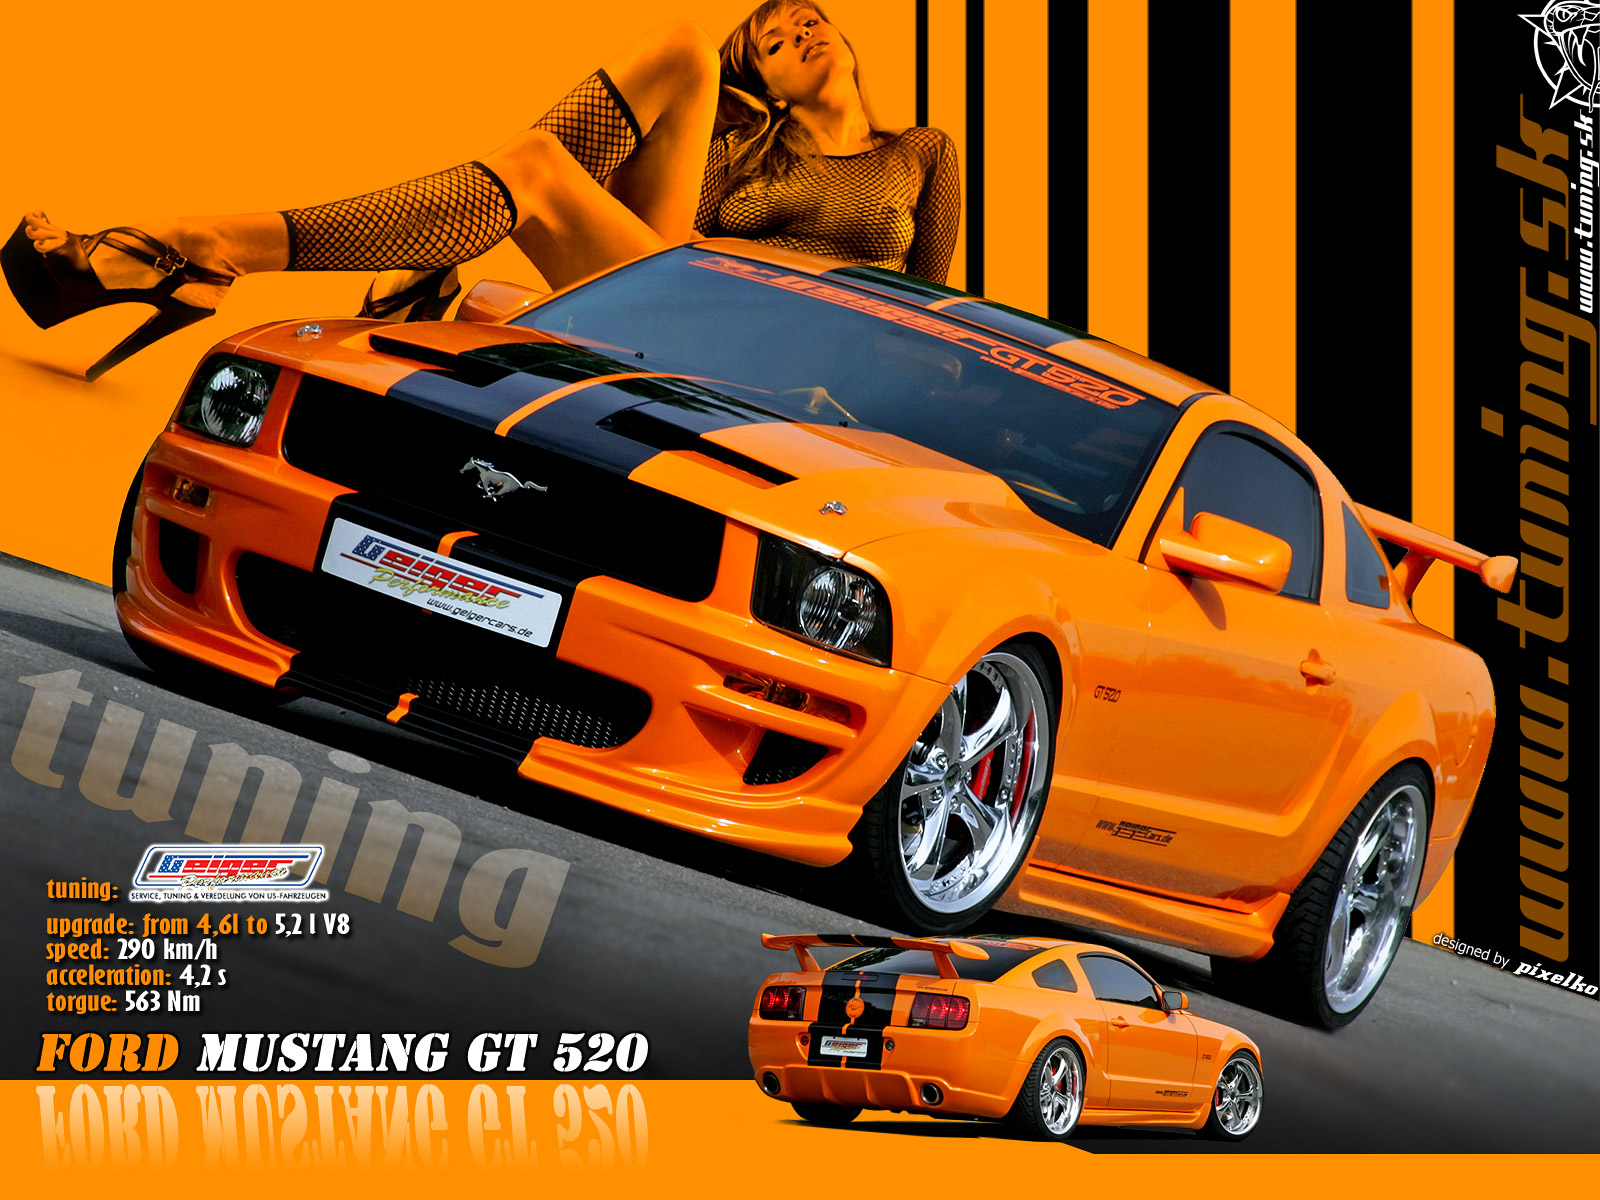 SPORT CARS DESIGN: NEW SPORT CARS FORD MUSTANG GT-520